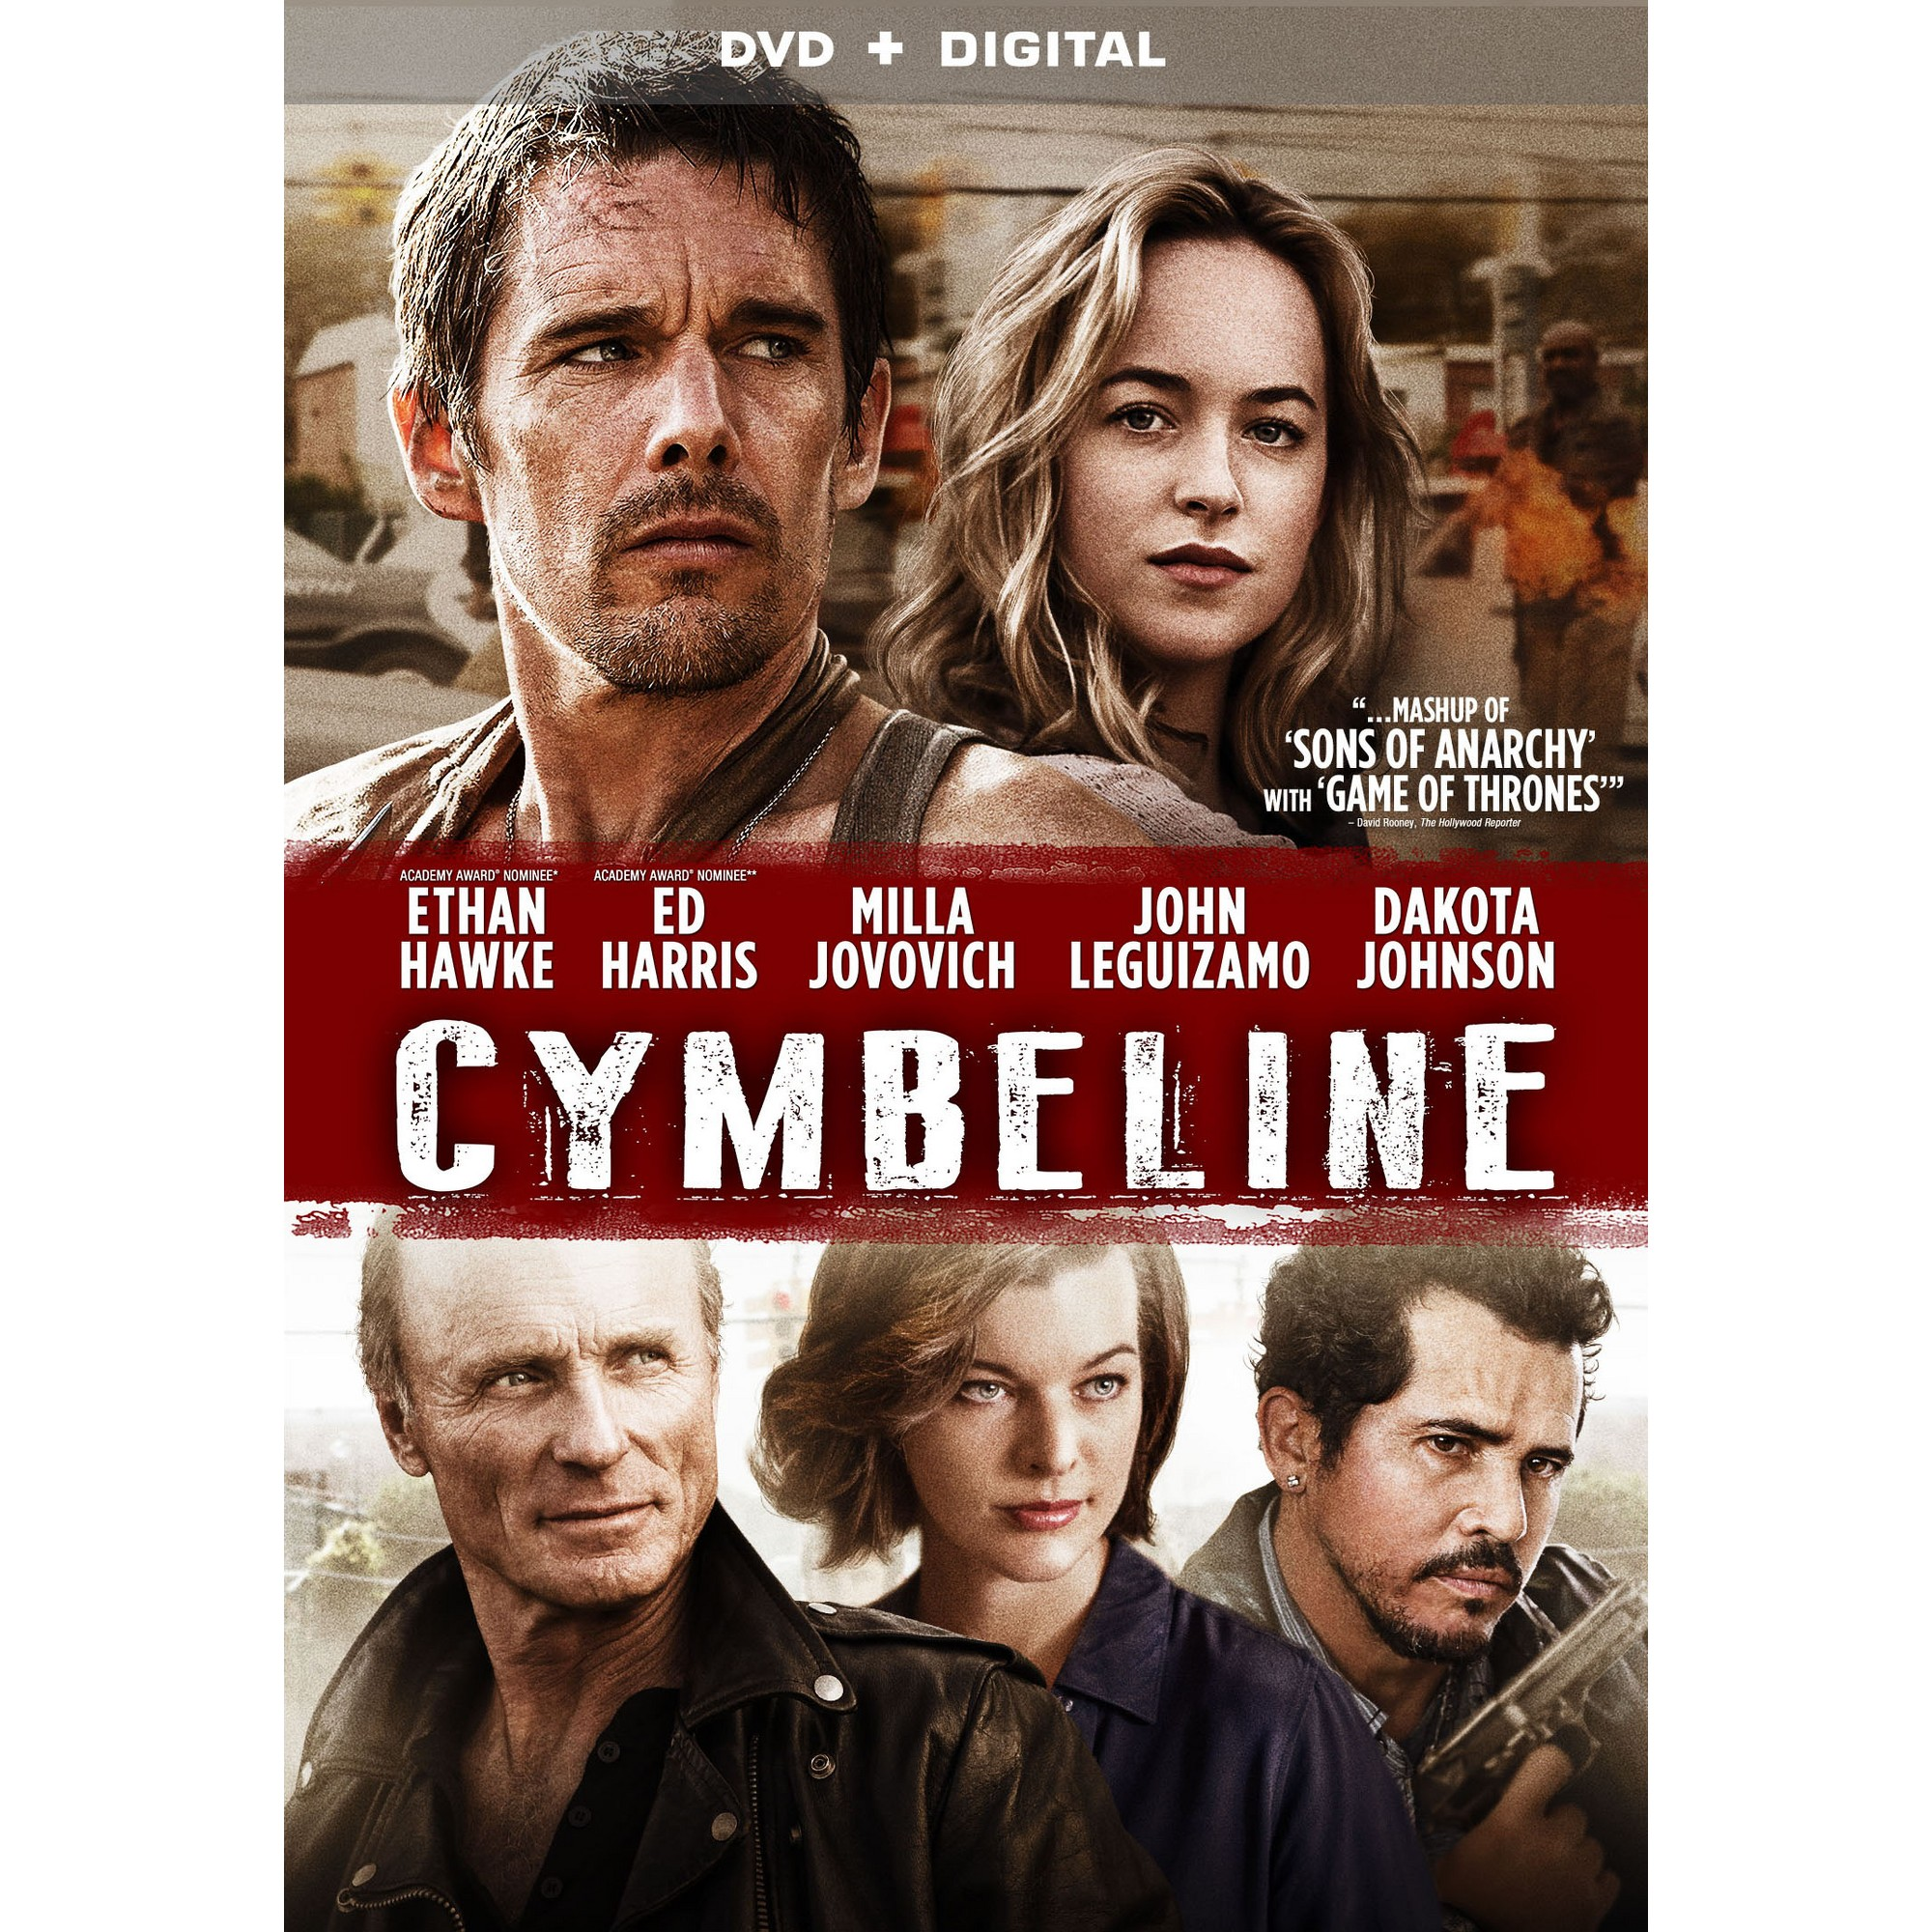 Cymbeline Blu ray, Wedding crashers quotes, All star cast